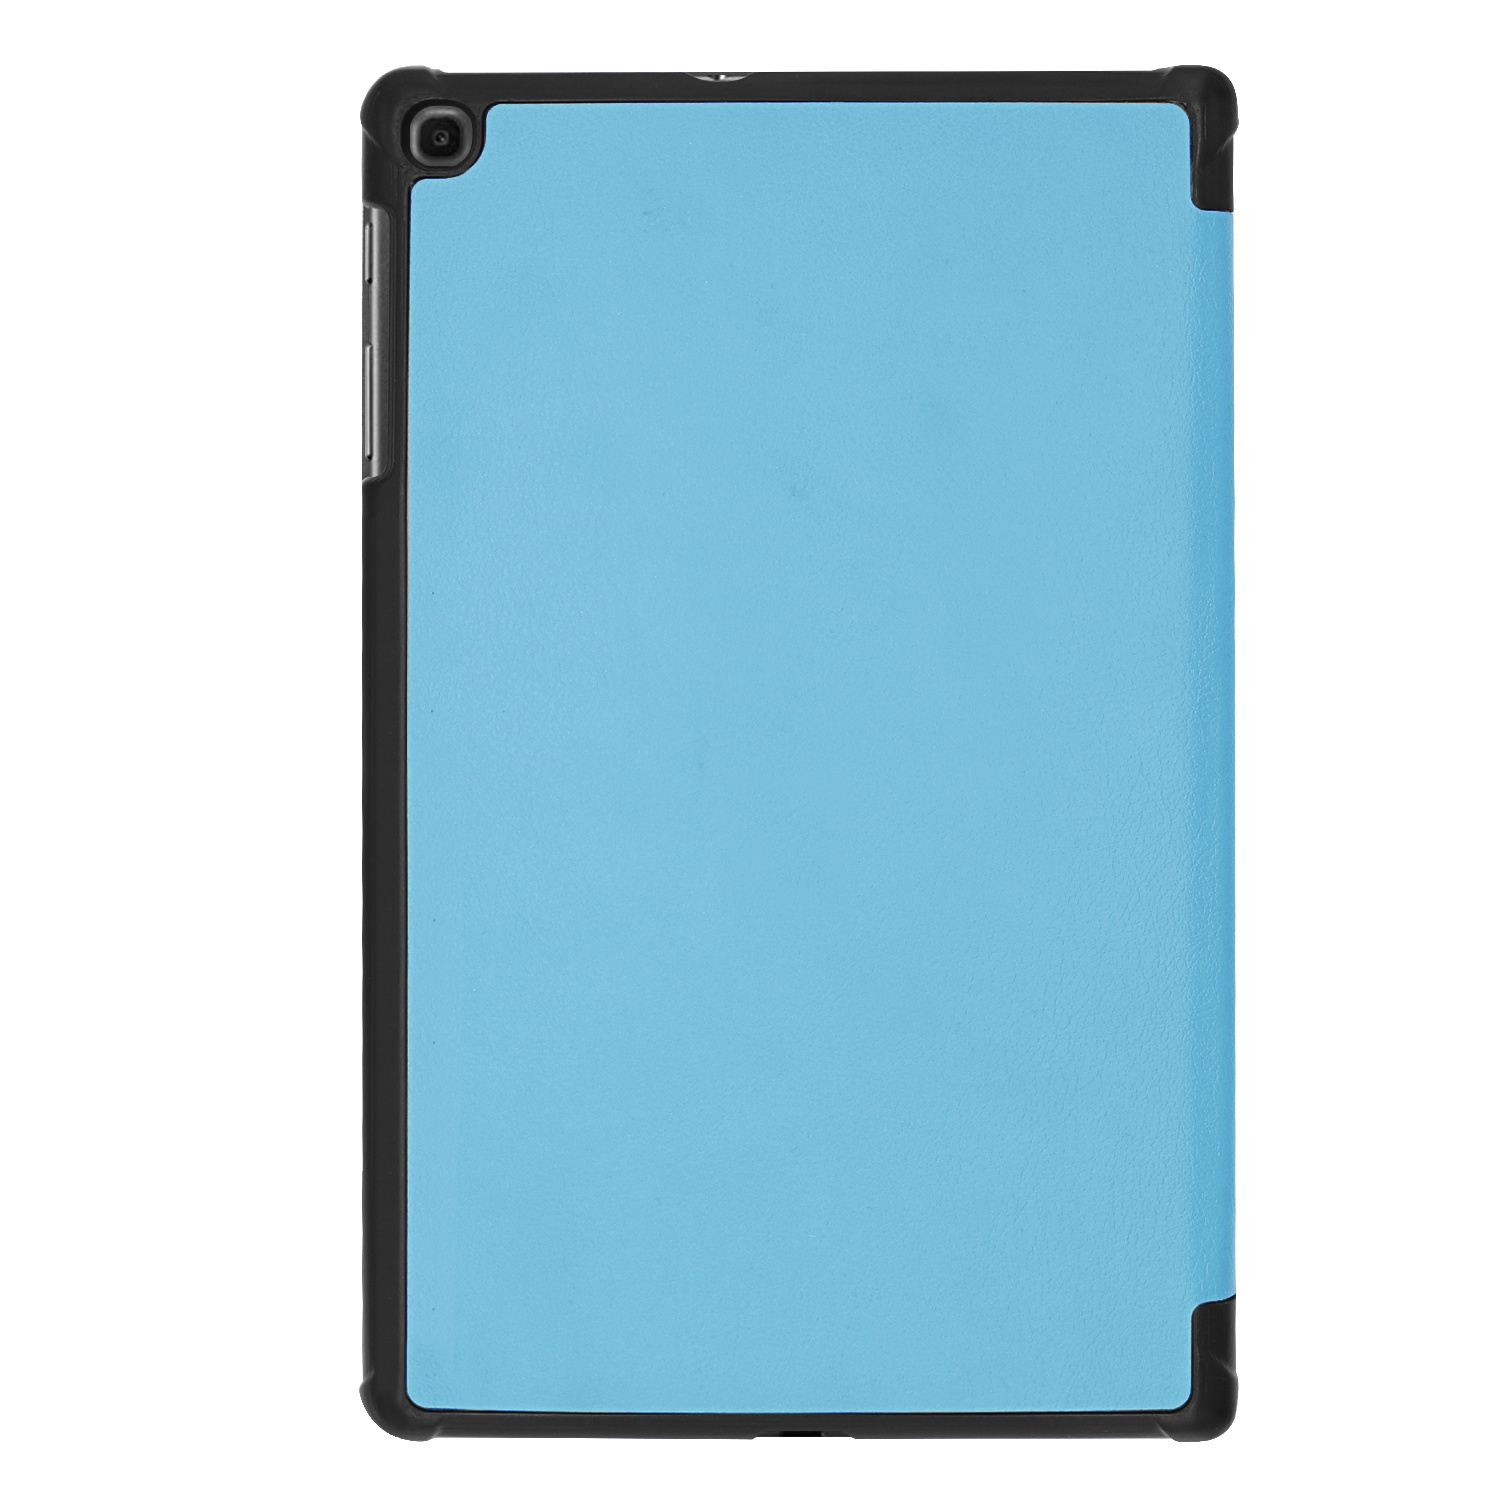 3-Vouw cover hoes Lichtblauw voor de Samsung Galaxy Tab A 10.1 inch (2019)